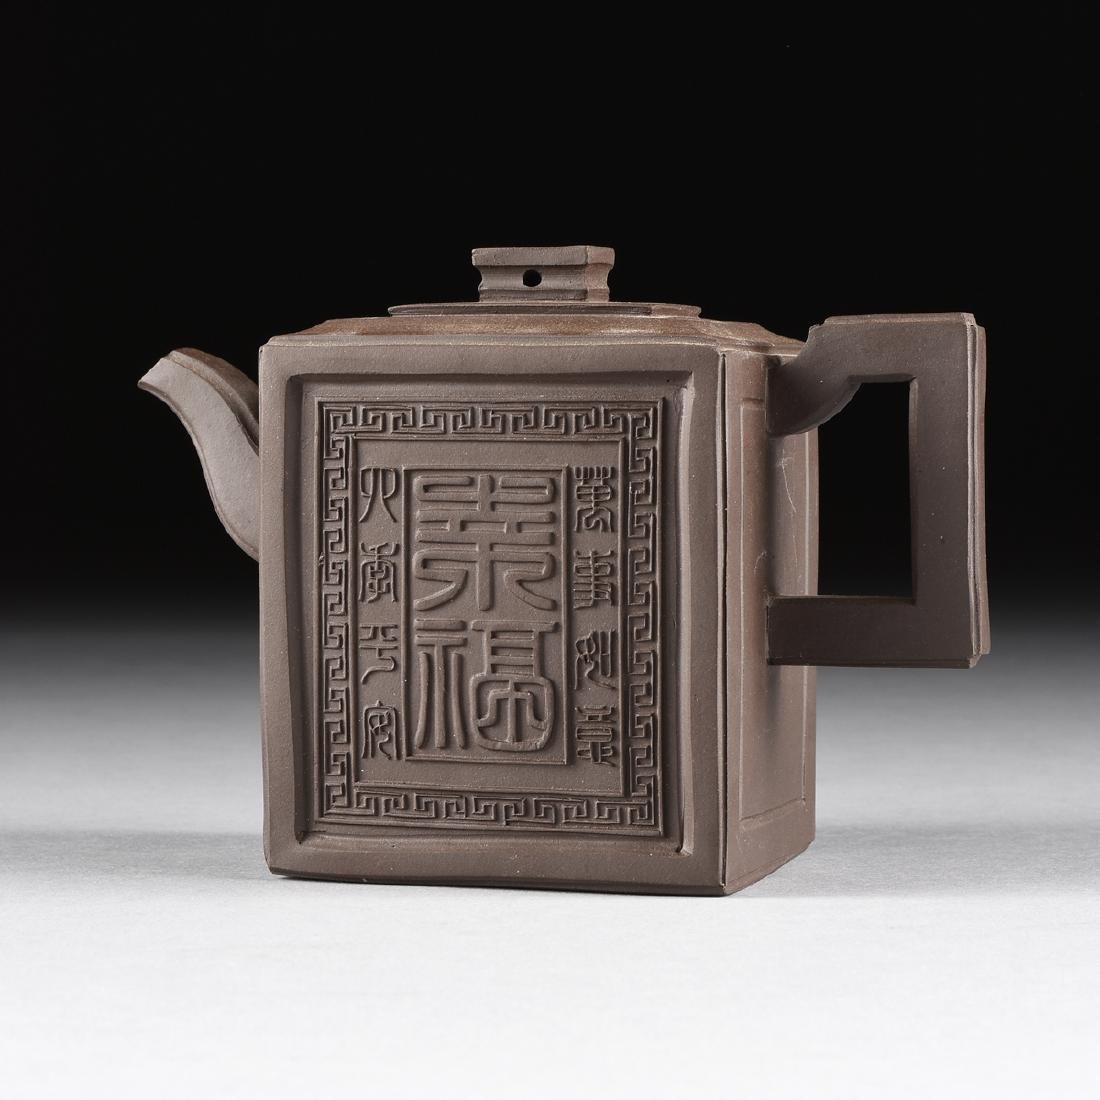 A CHINESE RED STONEWARE TEAPOT, YIXING PROVINCE, LATE - 8